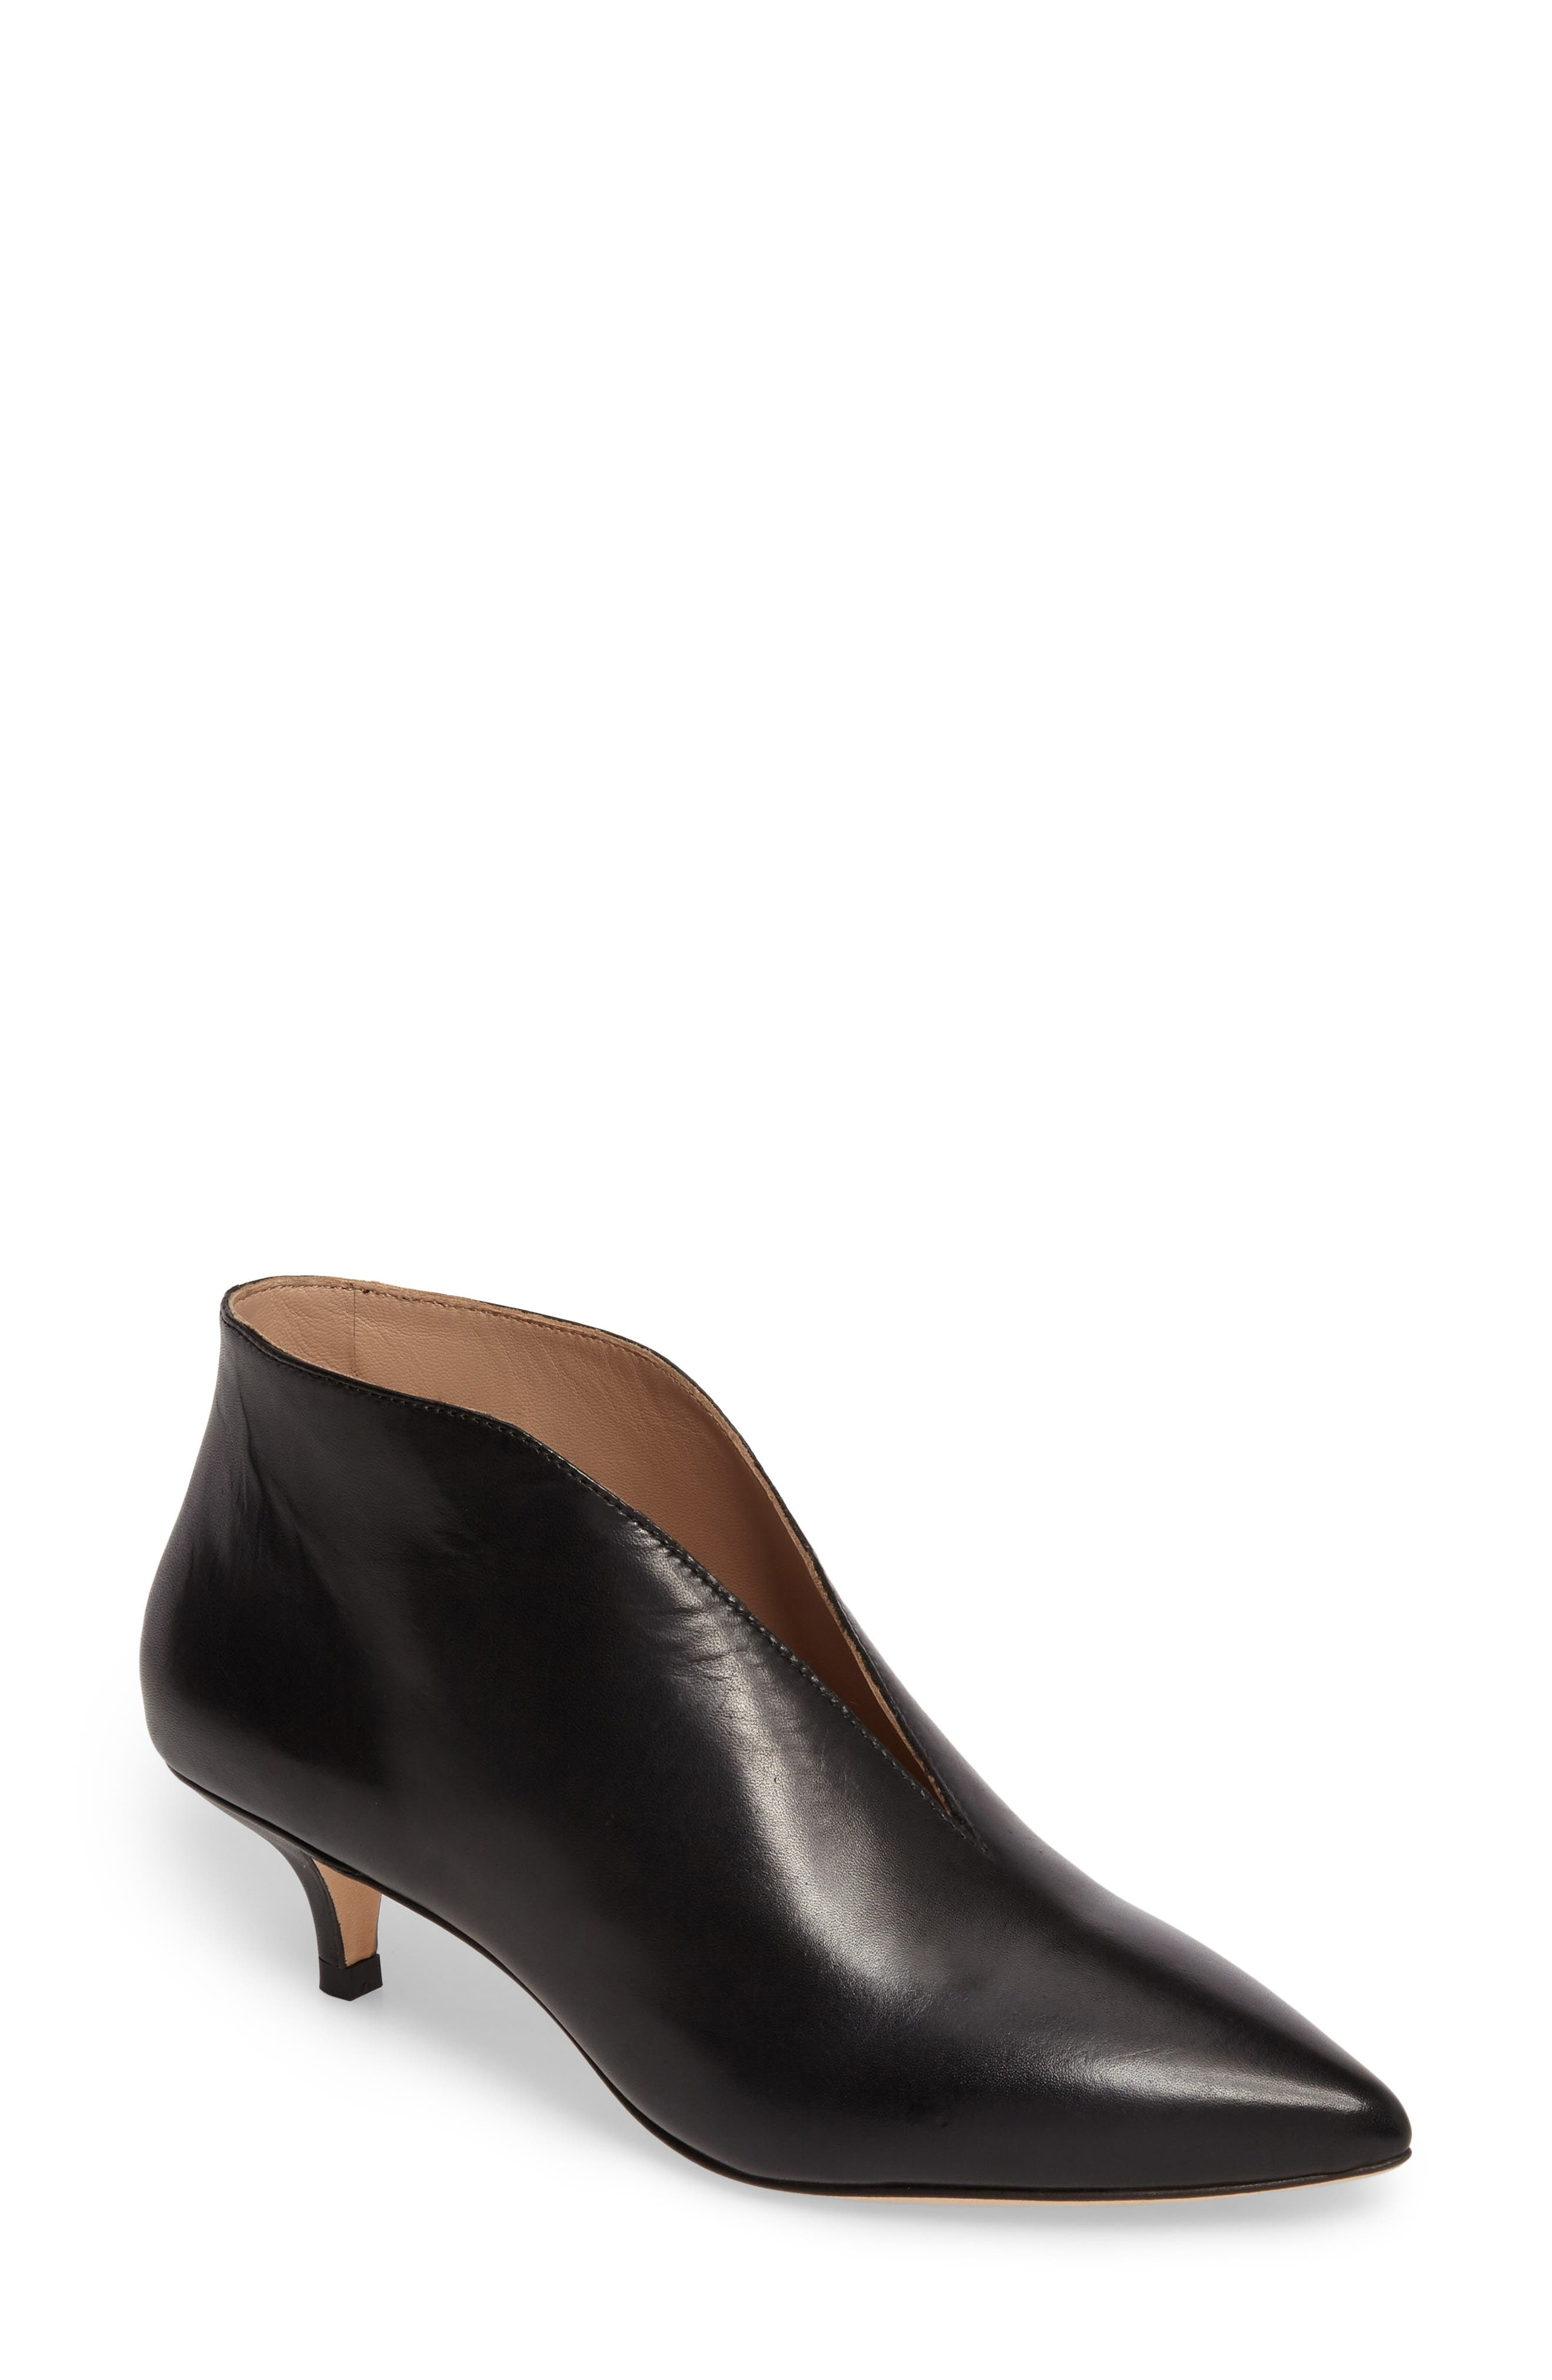 Kora Bootie,                         Main,                         color, 001